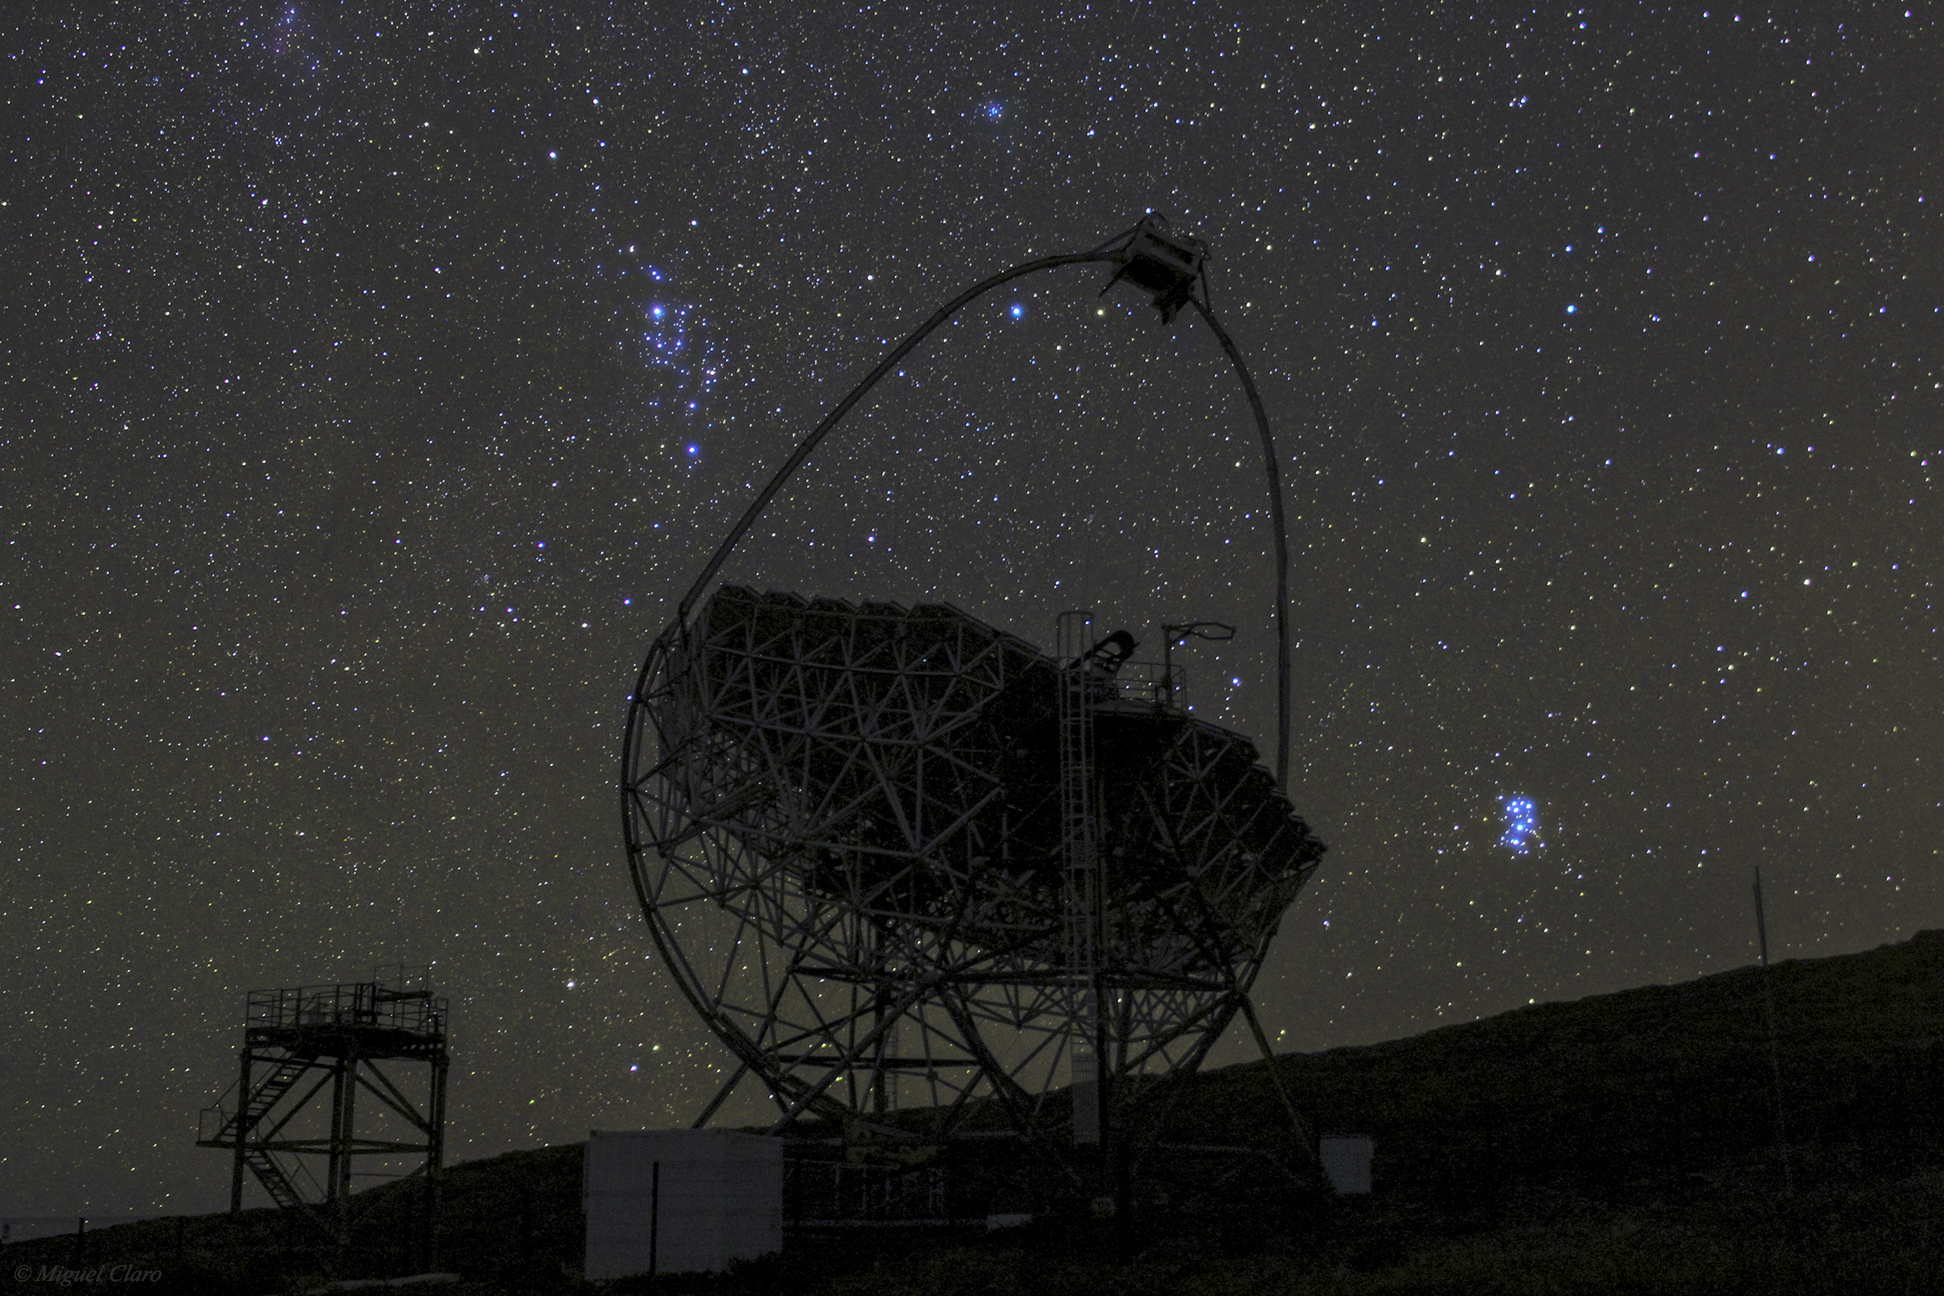 Pleiades Dazzles Over MAGIC Telescope by Miguel Claro